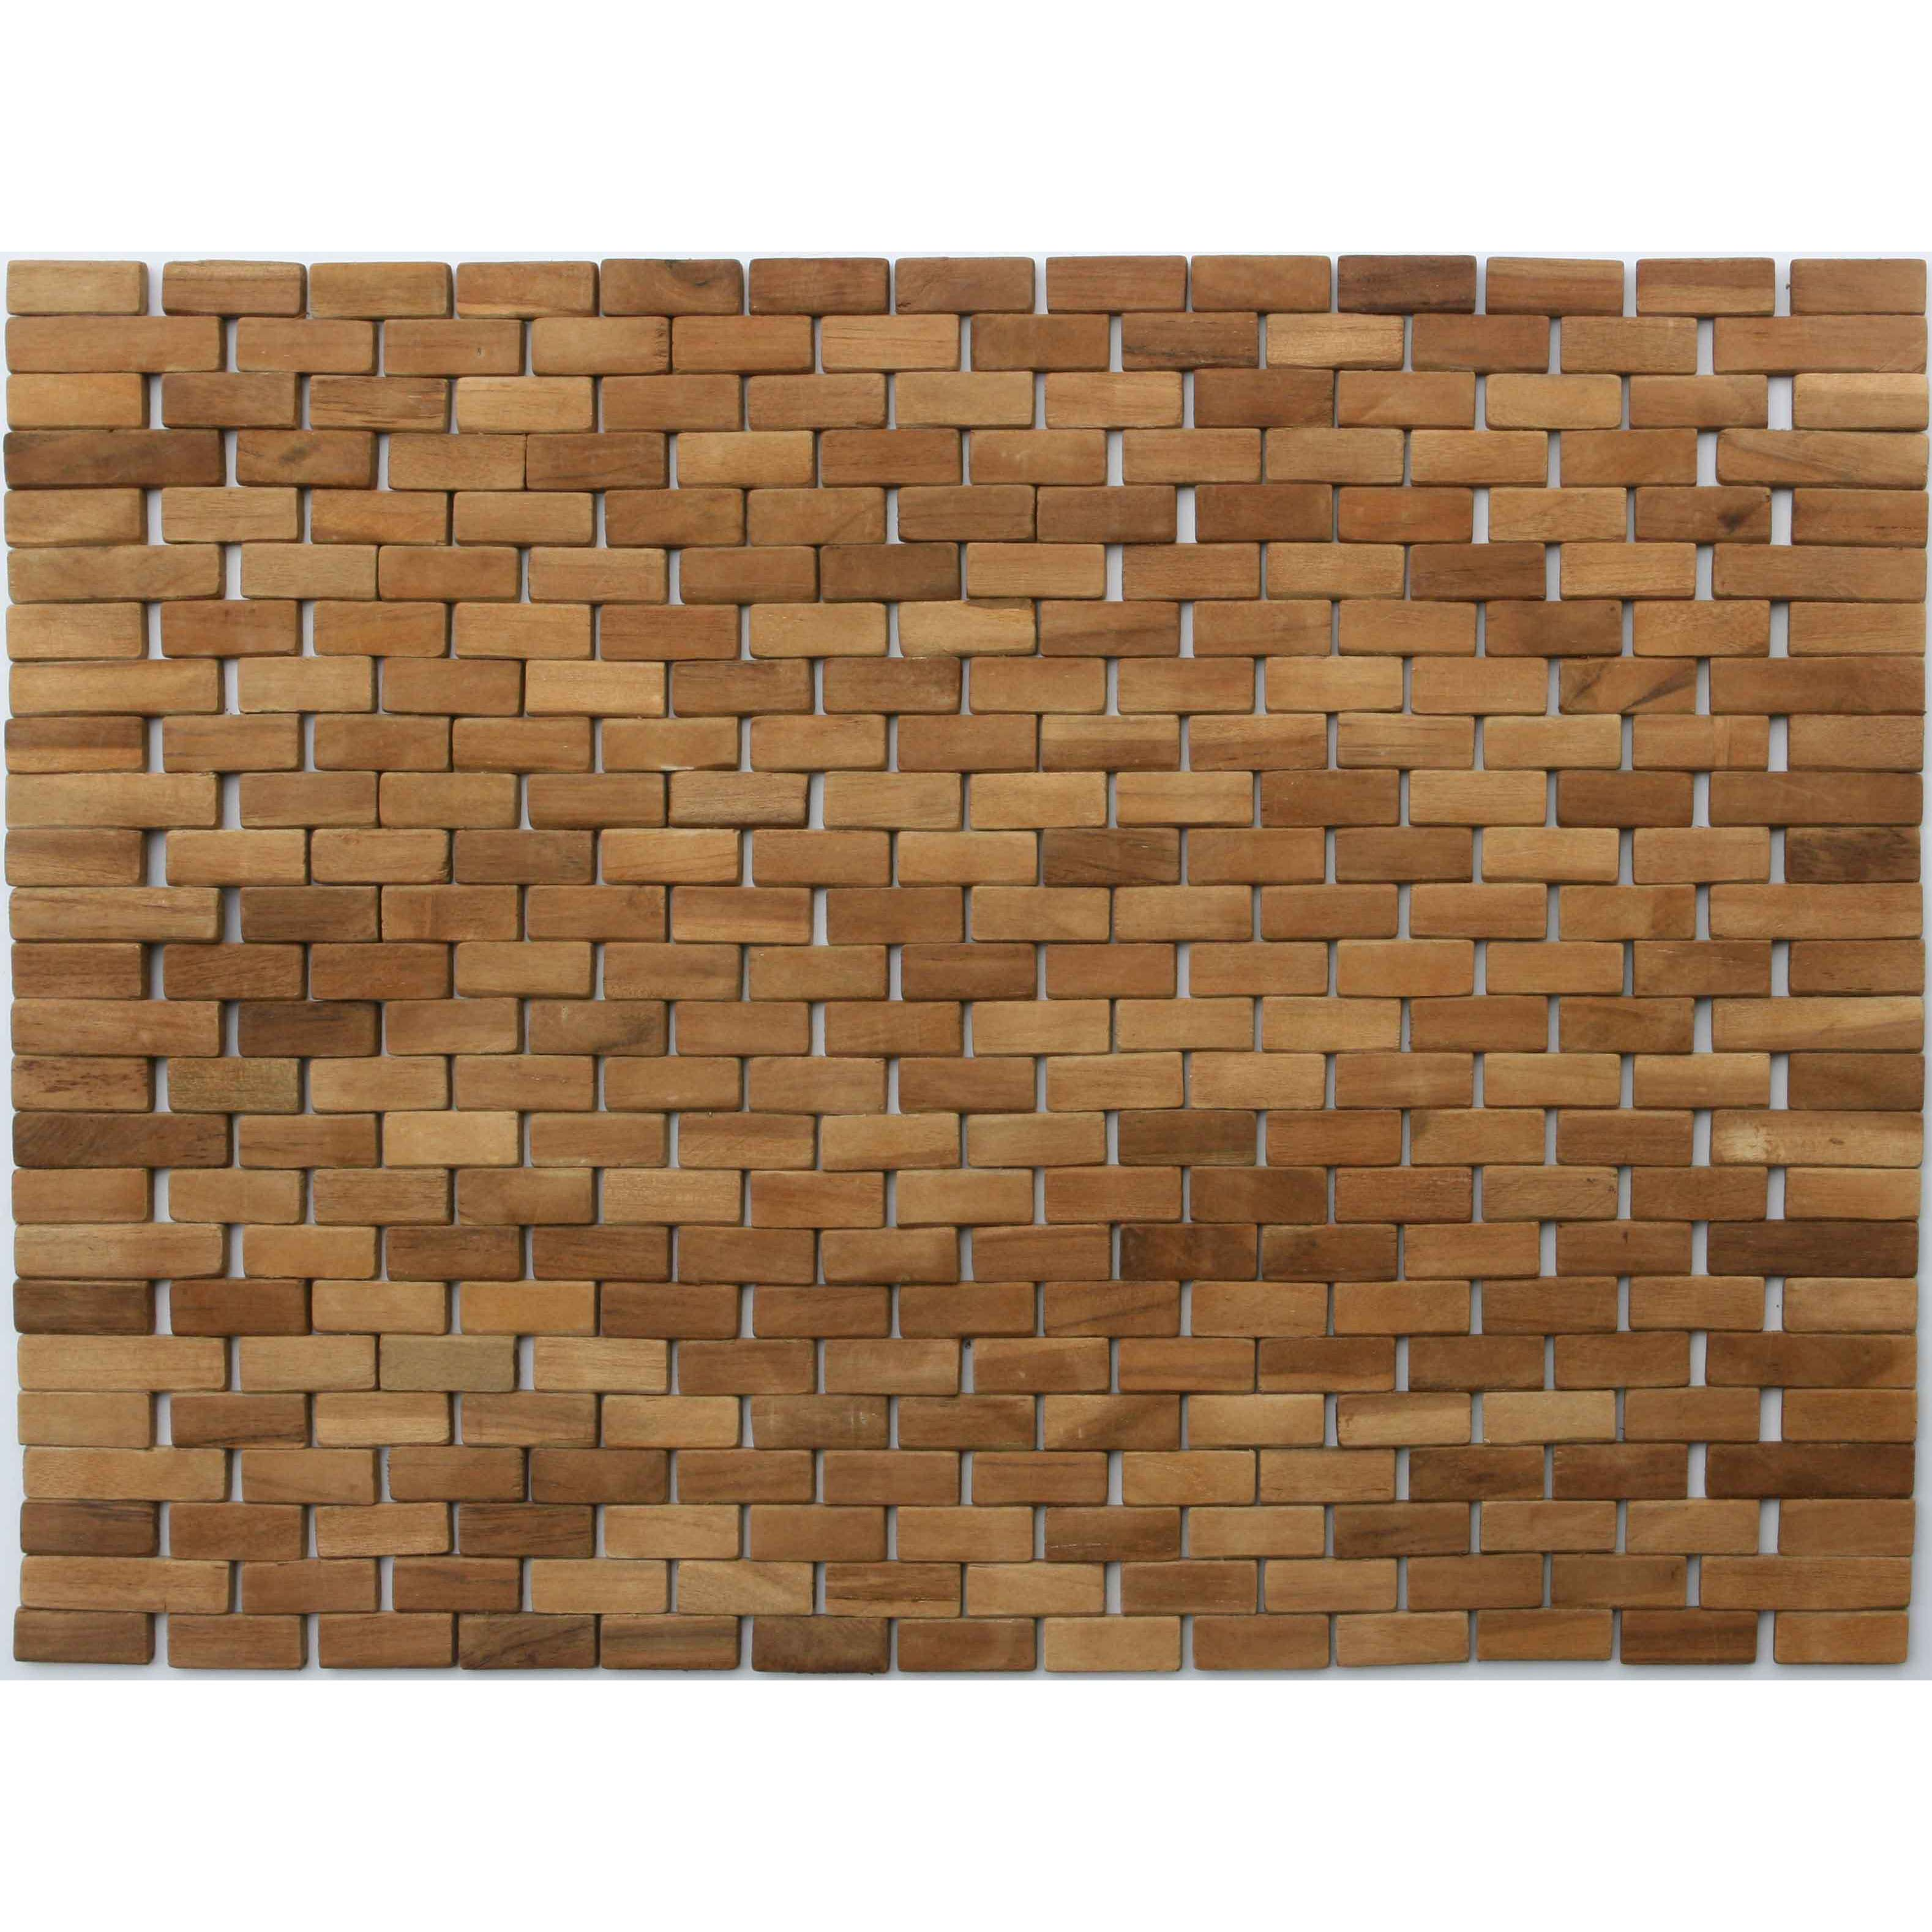 Shop Teak Indoor/ Outdoor Bath and Shower Mat - Free Shipping On ...